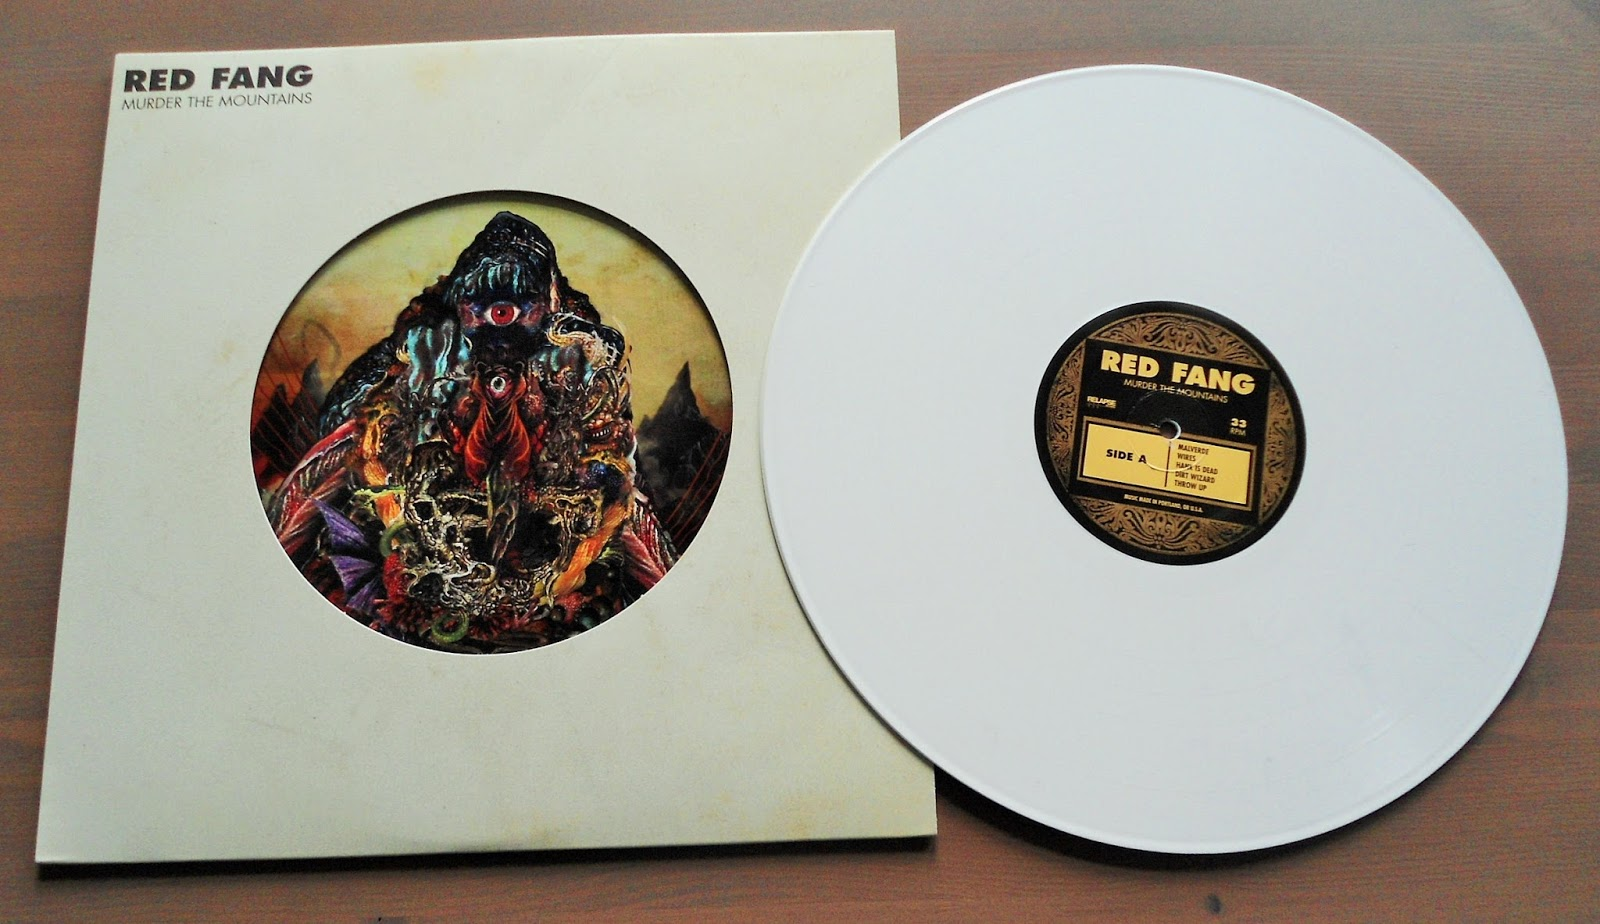 hardcore/metal vinyl: red fang - murder the mountains